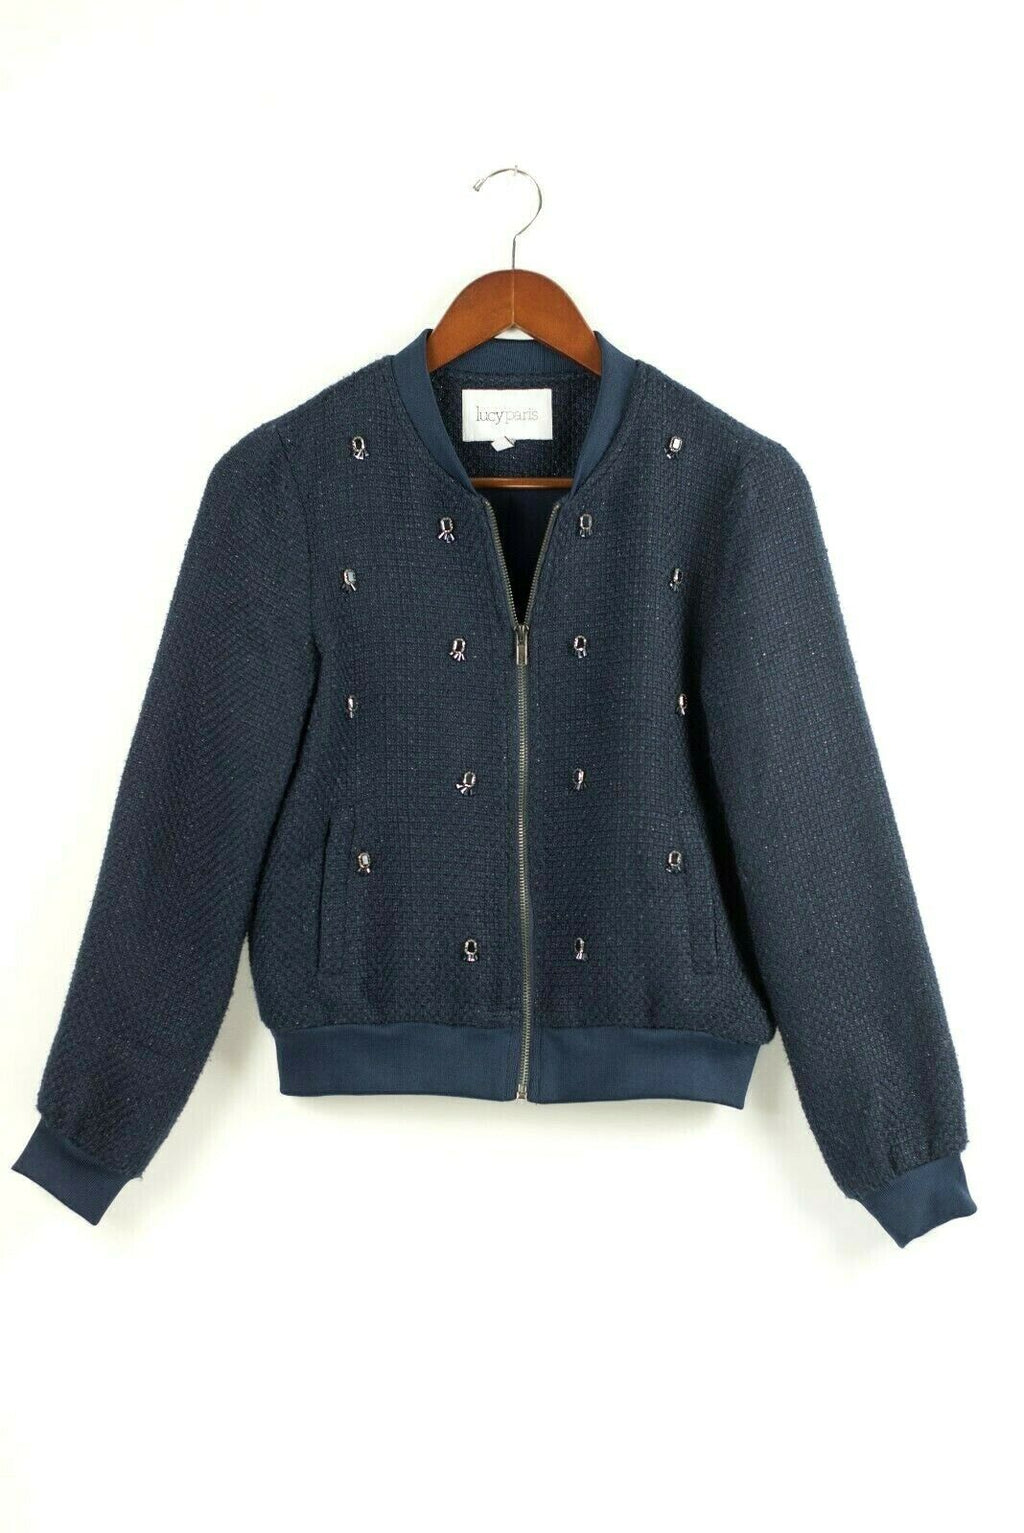 Lucy Paris Womens Size Small Navy Blue Outerwear Bomber Jacket Tweed Rhinestone